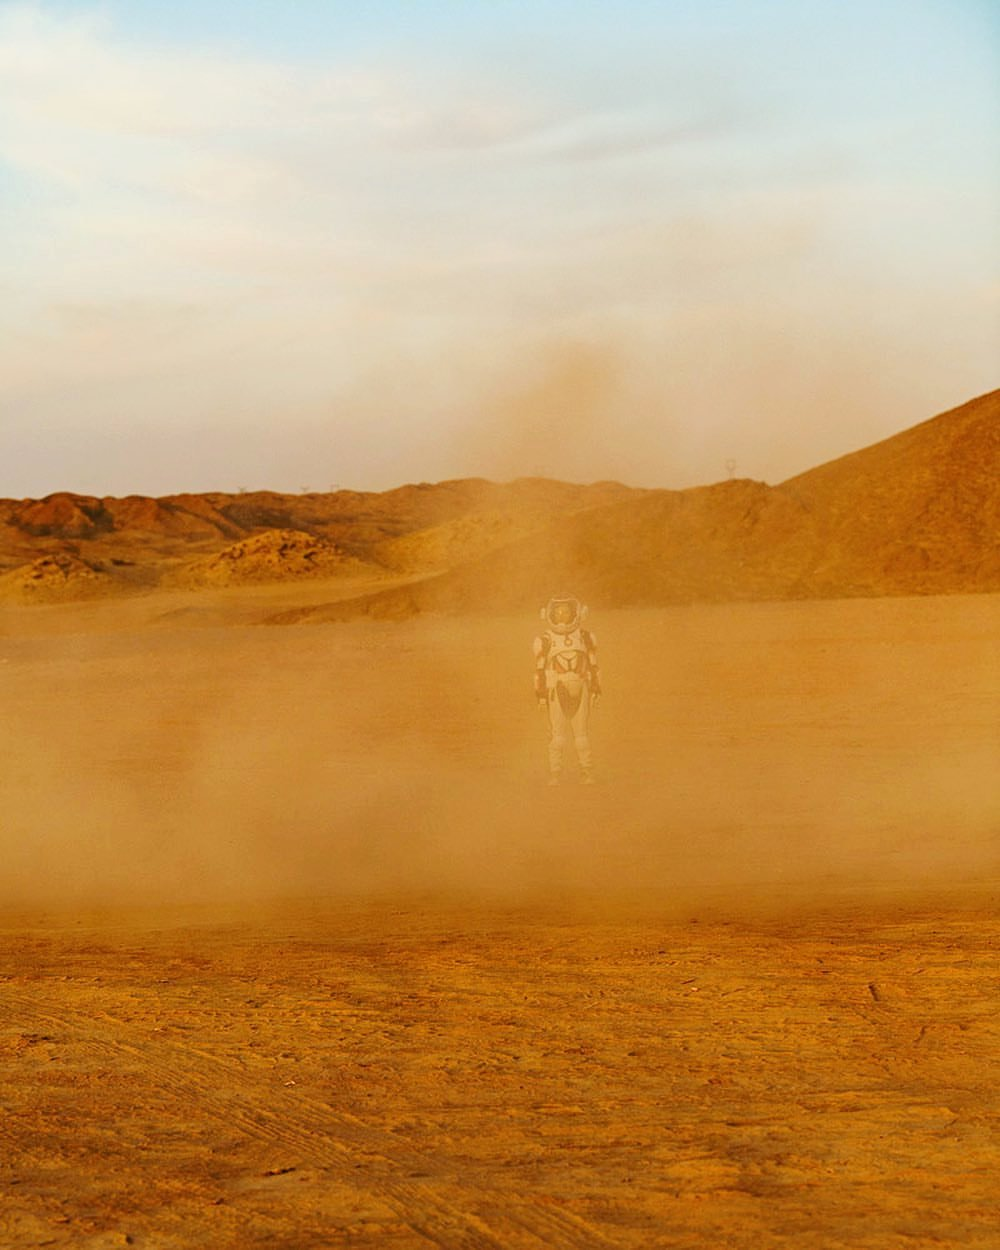 Walking around China's C-Space Mars simulation base in Gobi desert - photo by Matjaž Tančič